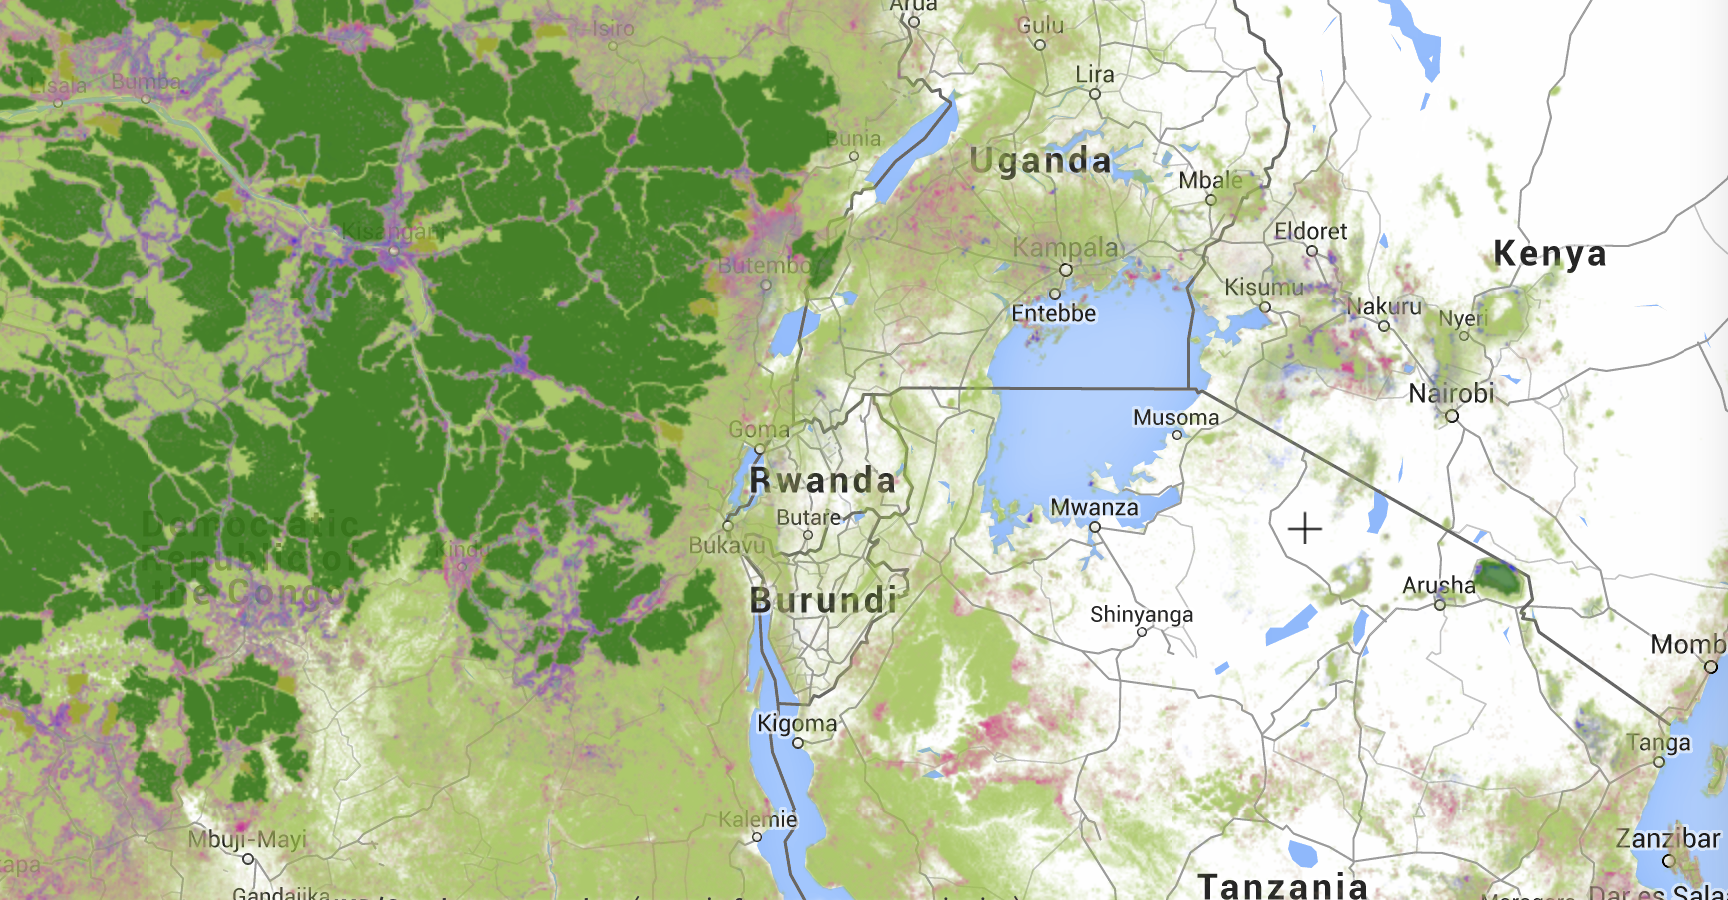 footprint in Central Africa